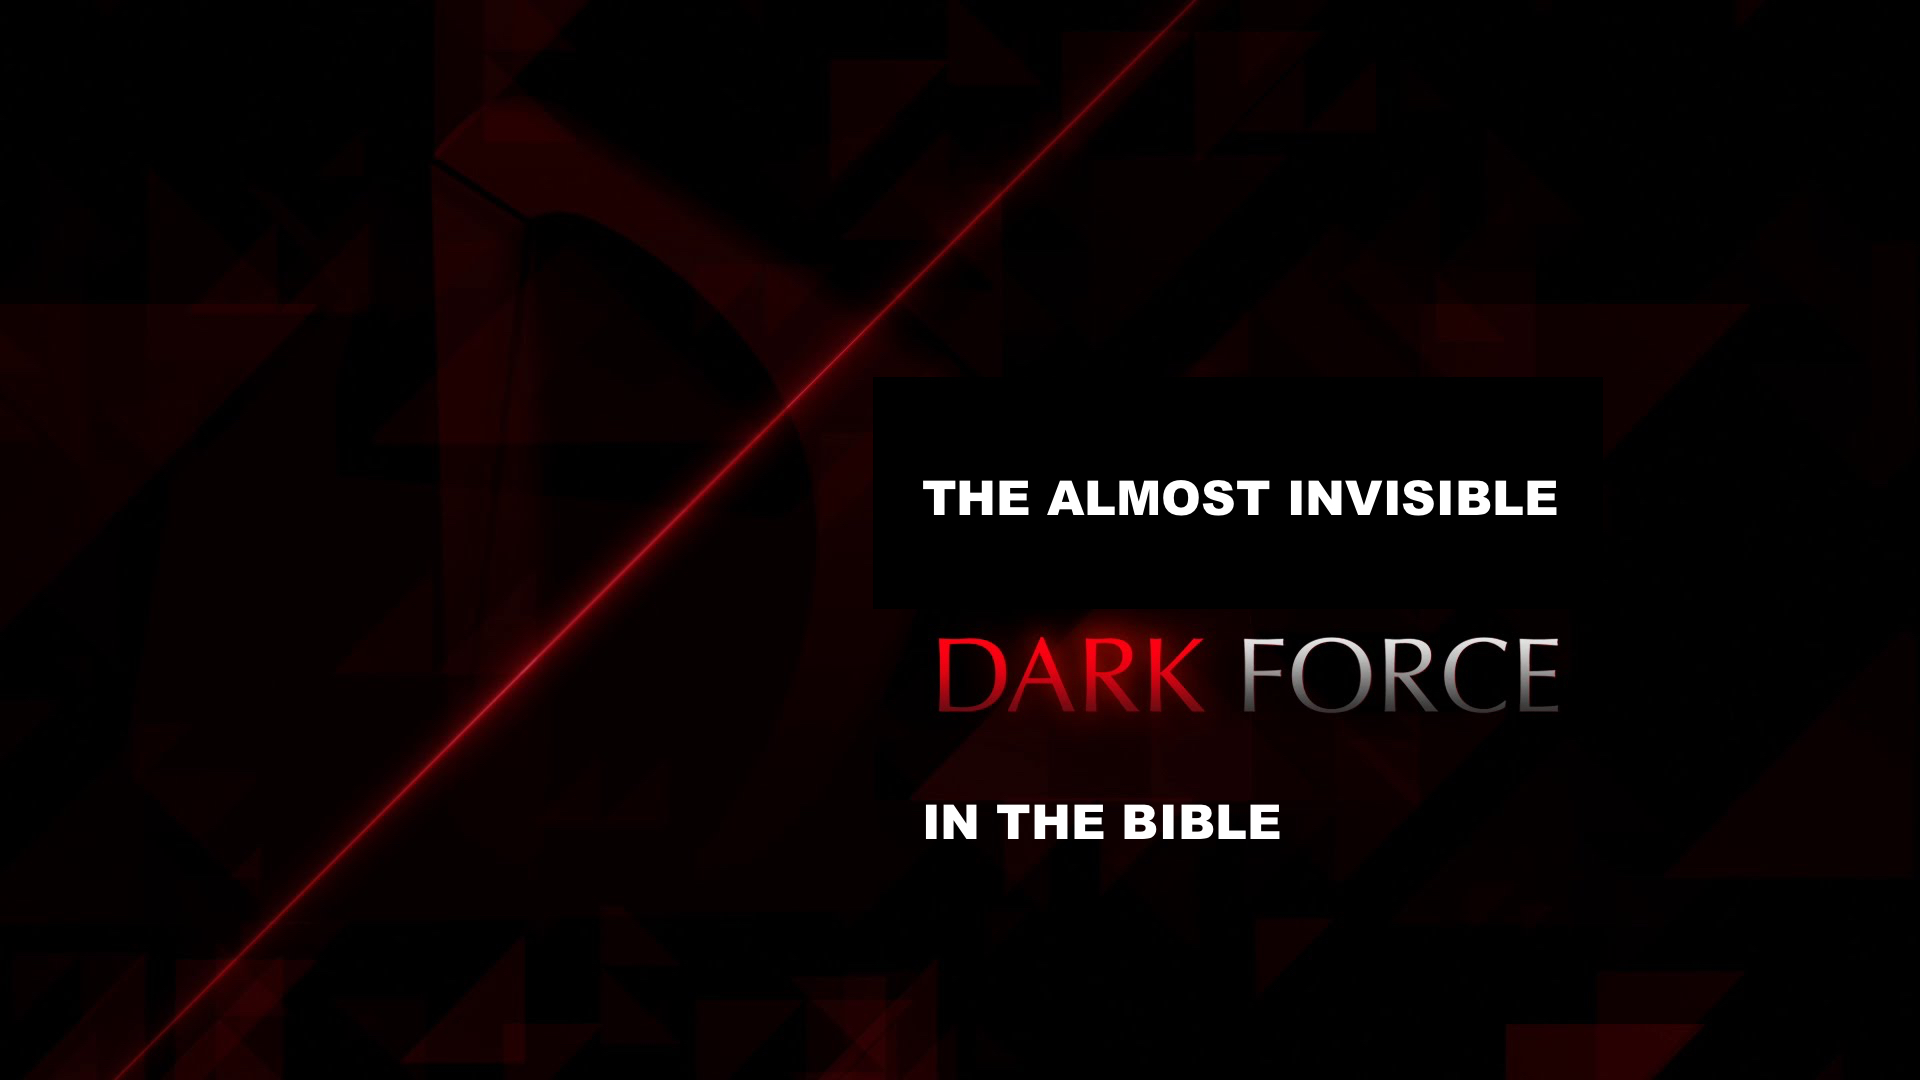 The Dark, Almost Invisible Force in the Bible